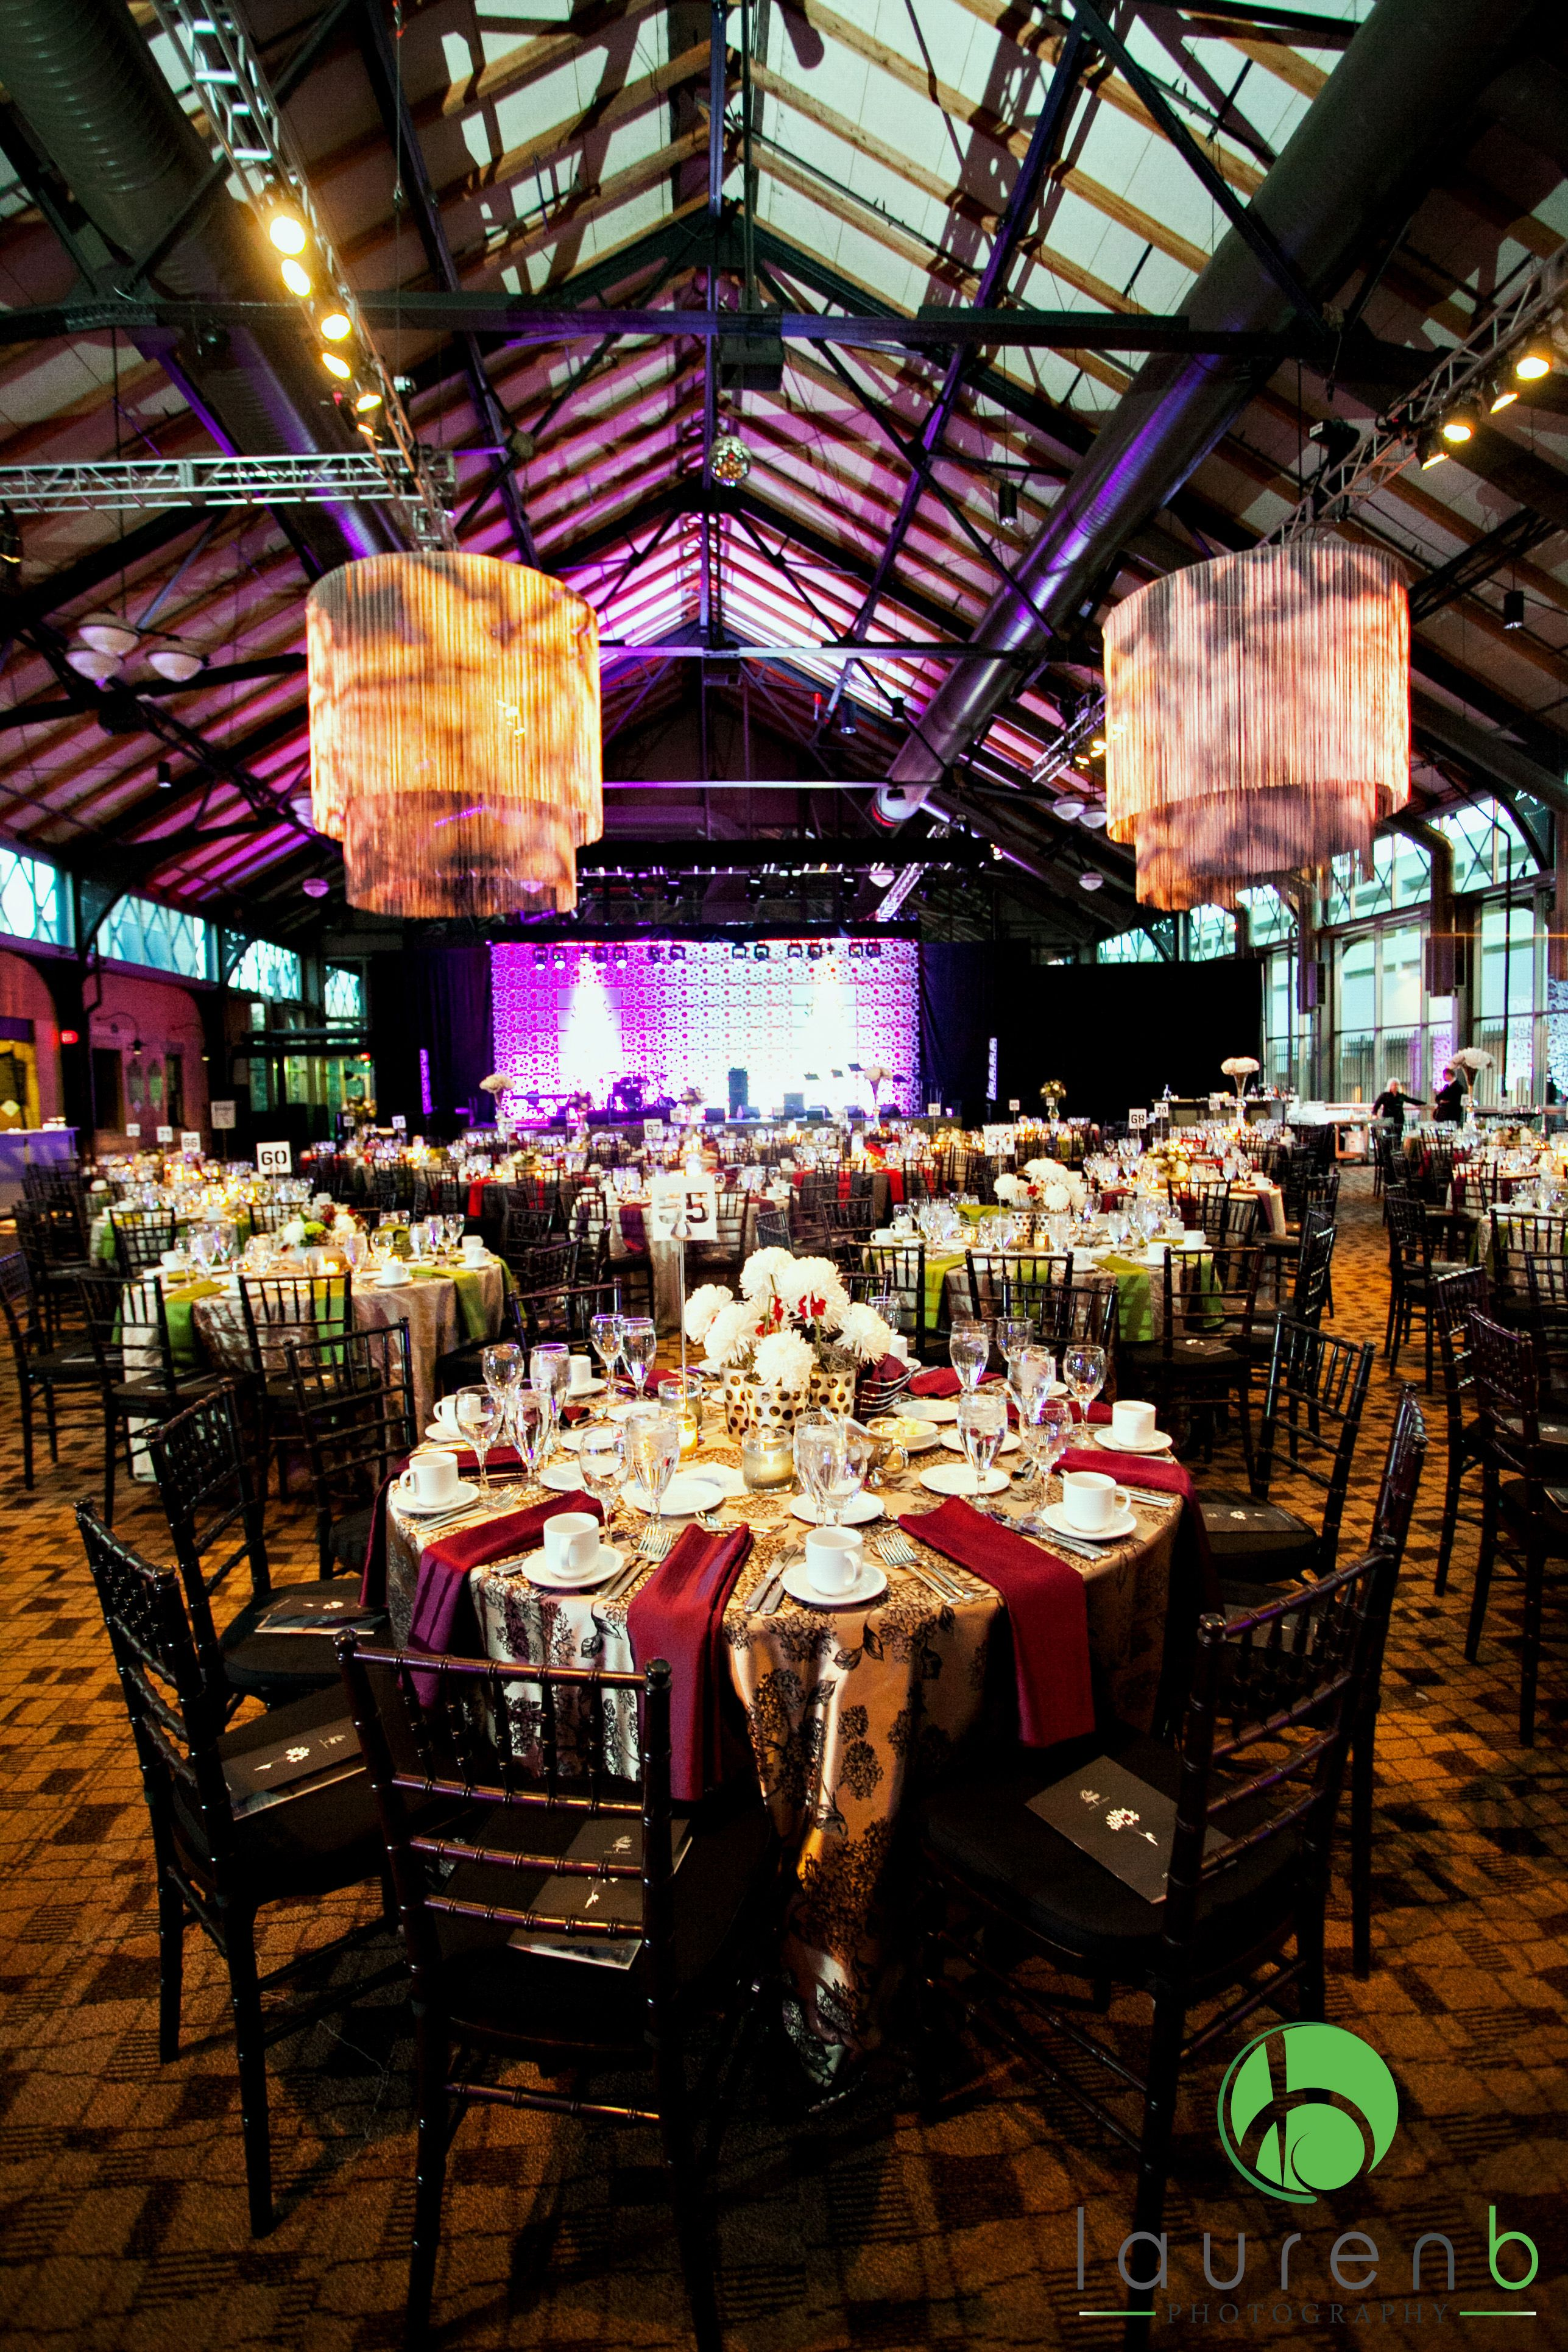 Lauren B Photography In The Pavilion The Renaissance Mpls Hotel The Depot Minneapolis Hotels Hotel Event Space